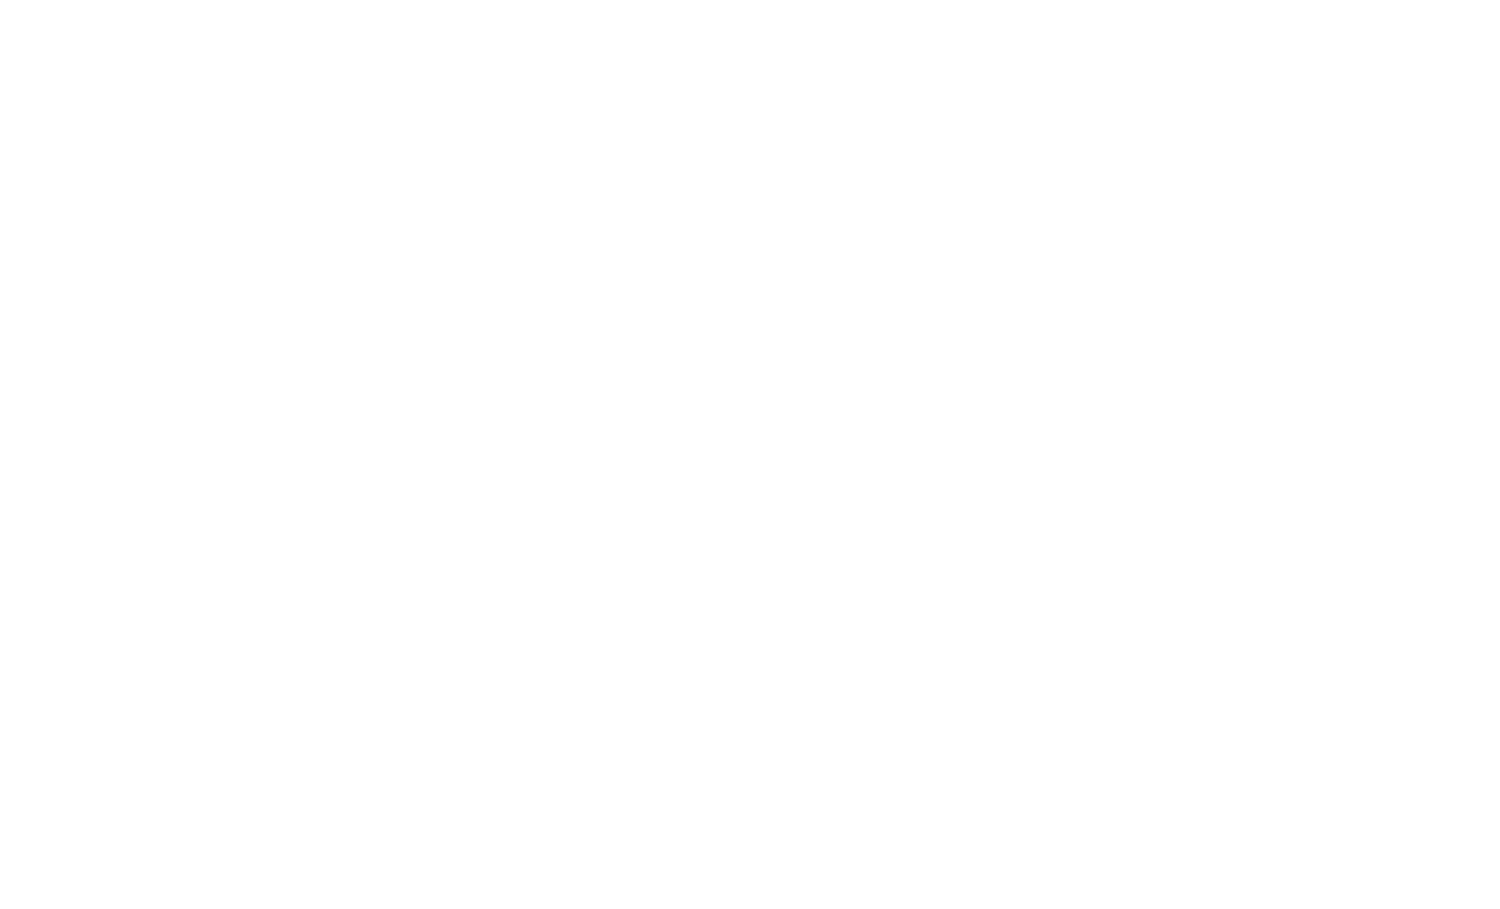 Route 66 Car Club